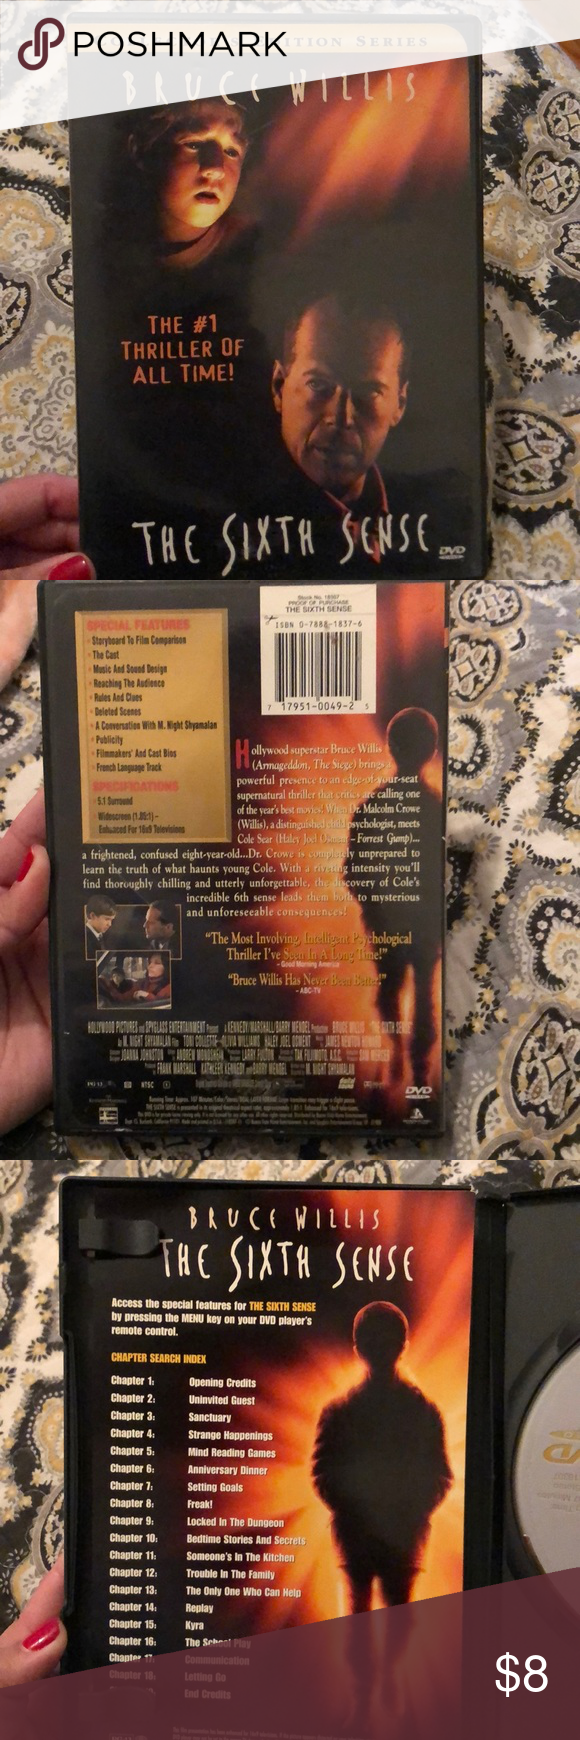 The Sixth Sense Great preowned condition !! tags: emotional